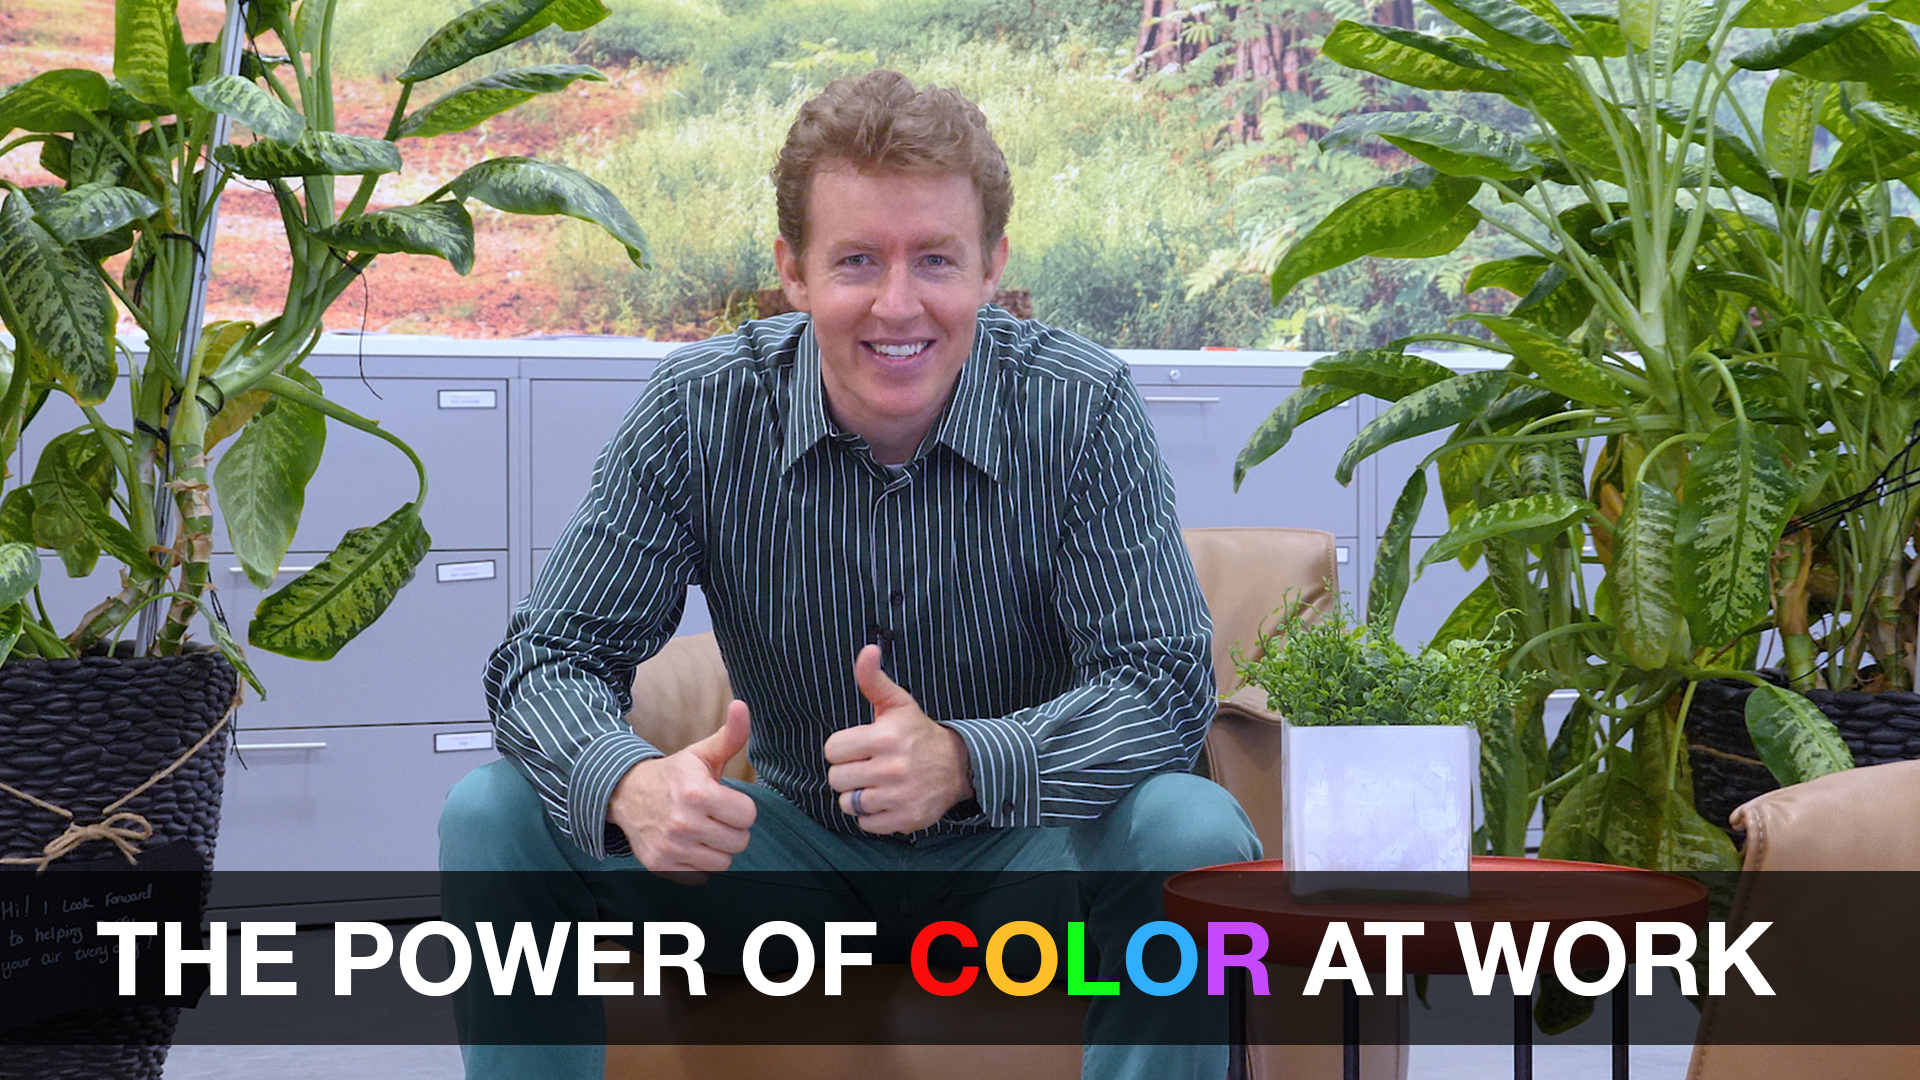 The Power of Color at Work